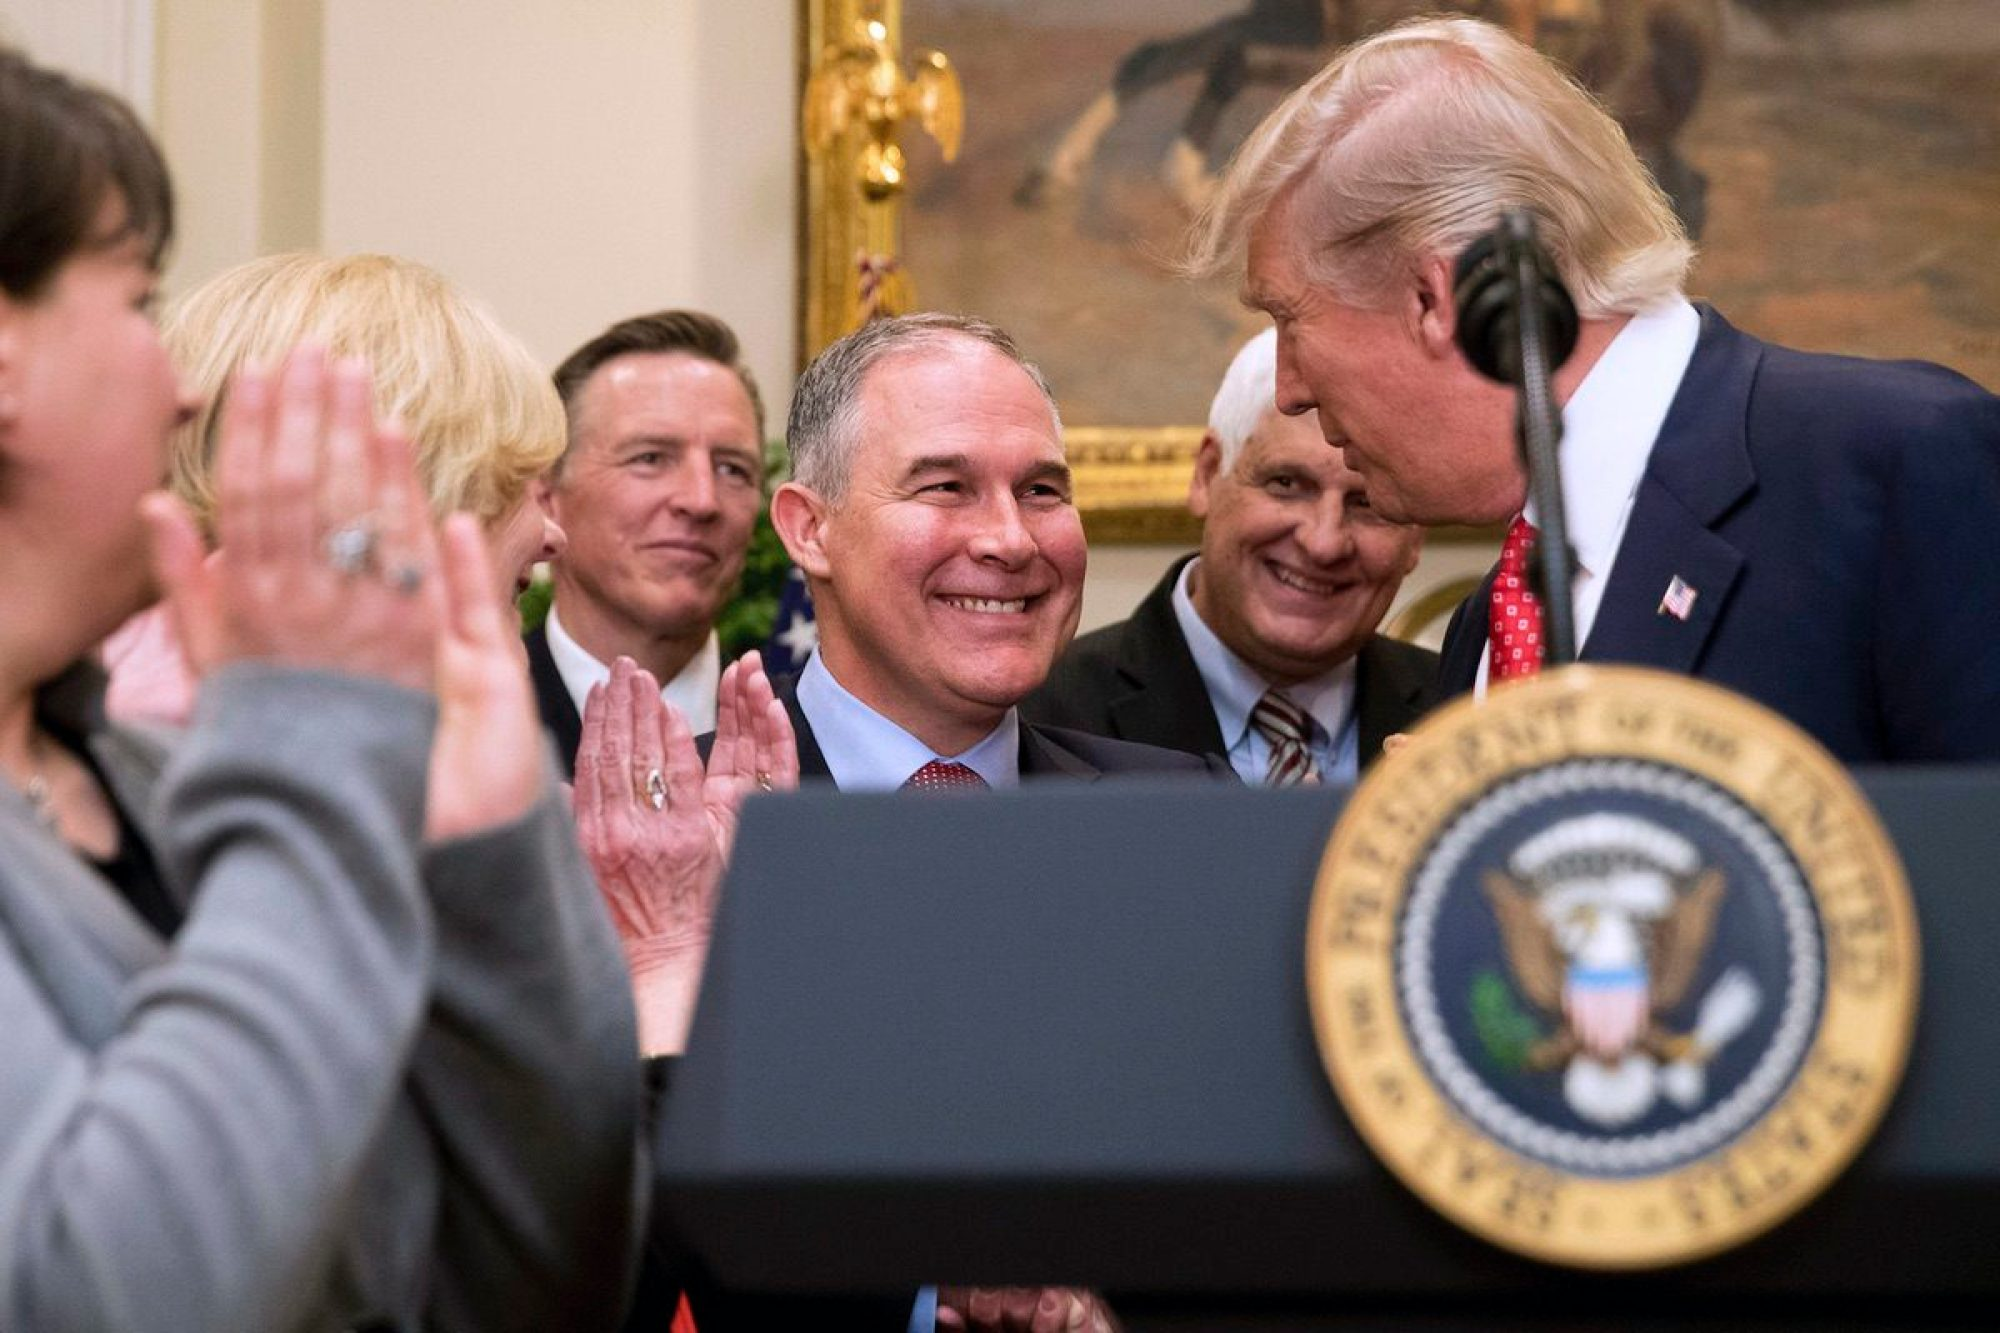 President Donald Trump, right, shakes hands with Environmental Protection Agency (EPA) Administrator Scott Pruitt, center, in the Roosevelt Room in the White House, Tuesday, Feb. 28, 2017. (AP Photo/Andrew Harnik)